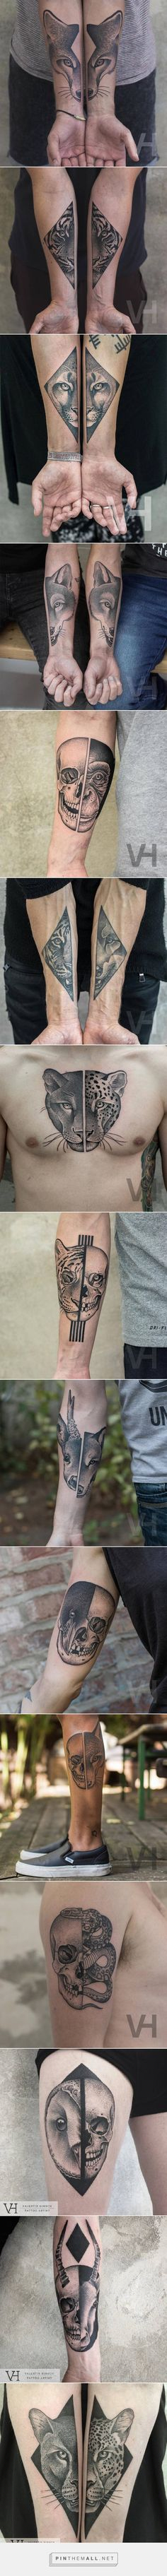 Split Animals Faces Tattoos Inked on Separate Sides – Fubiz Media - created via https://pinthemall.net                                                                                                                                                      Más